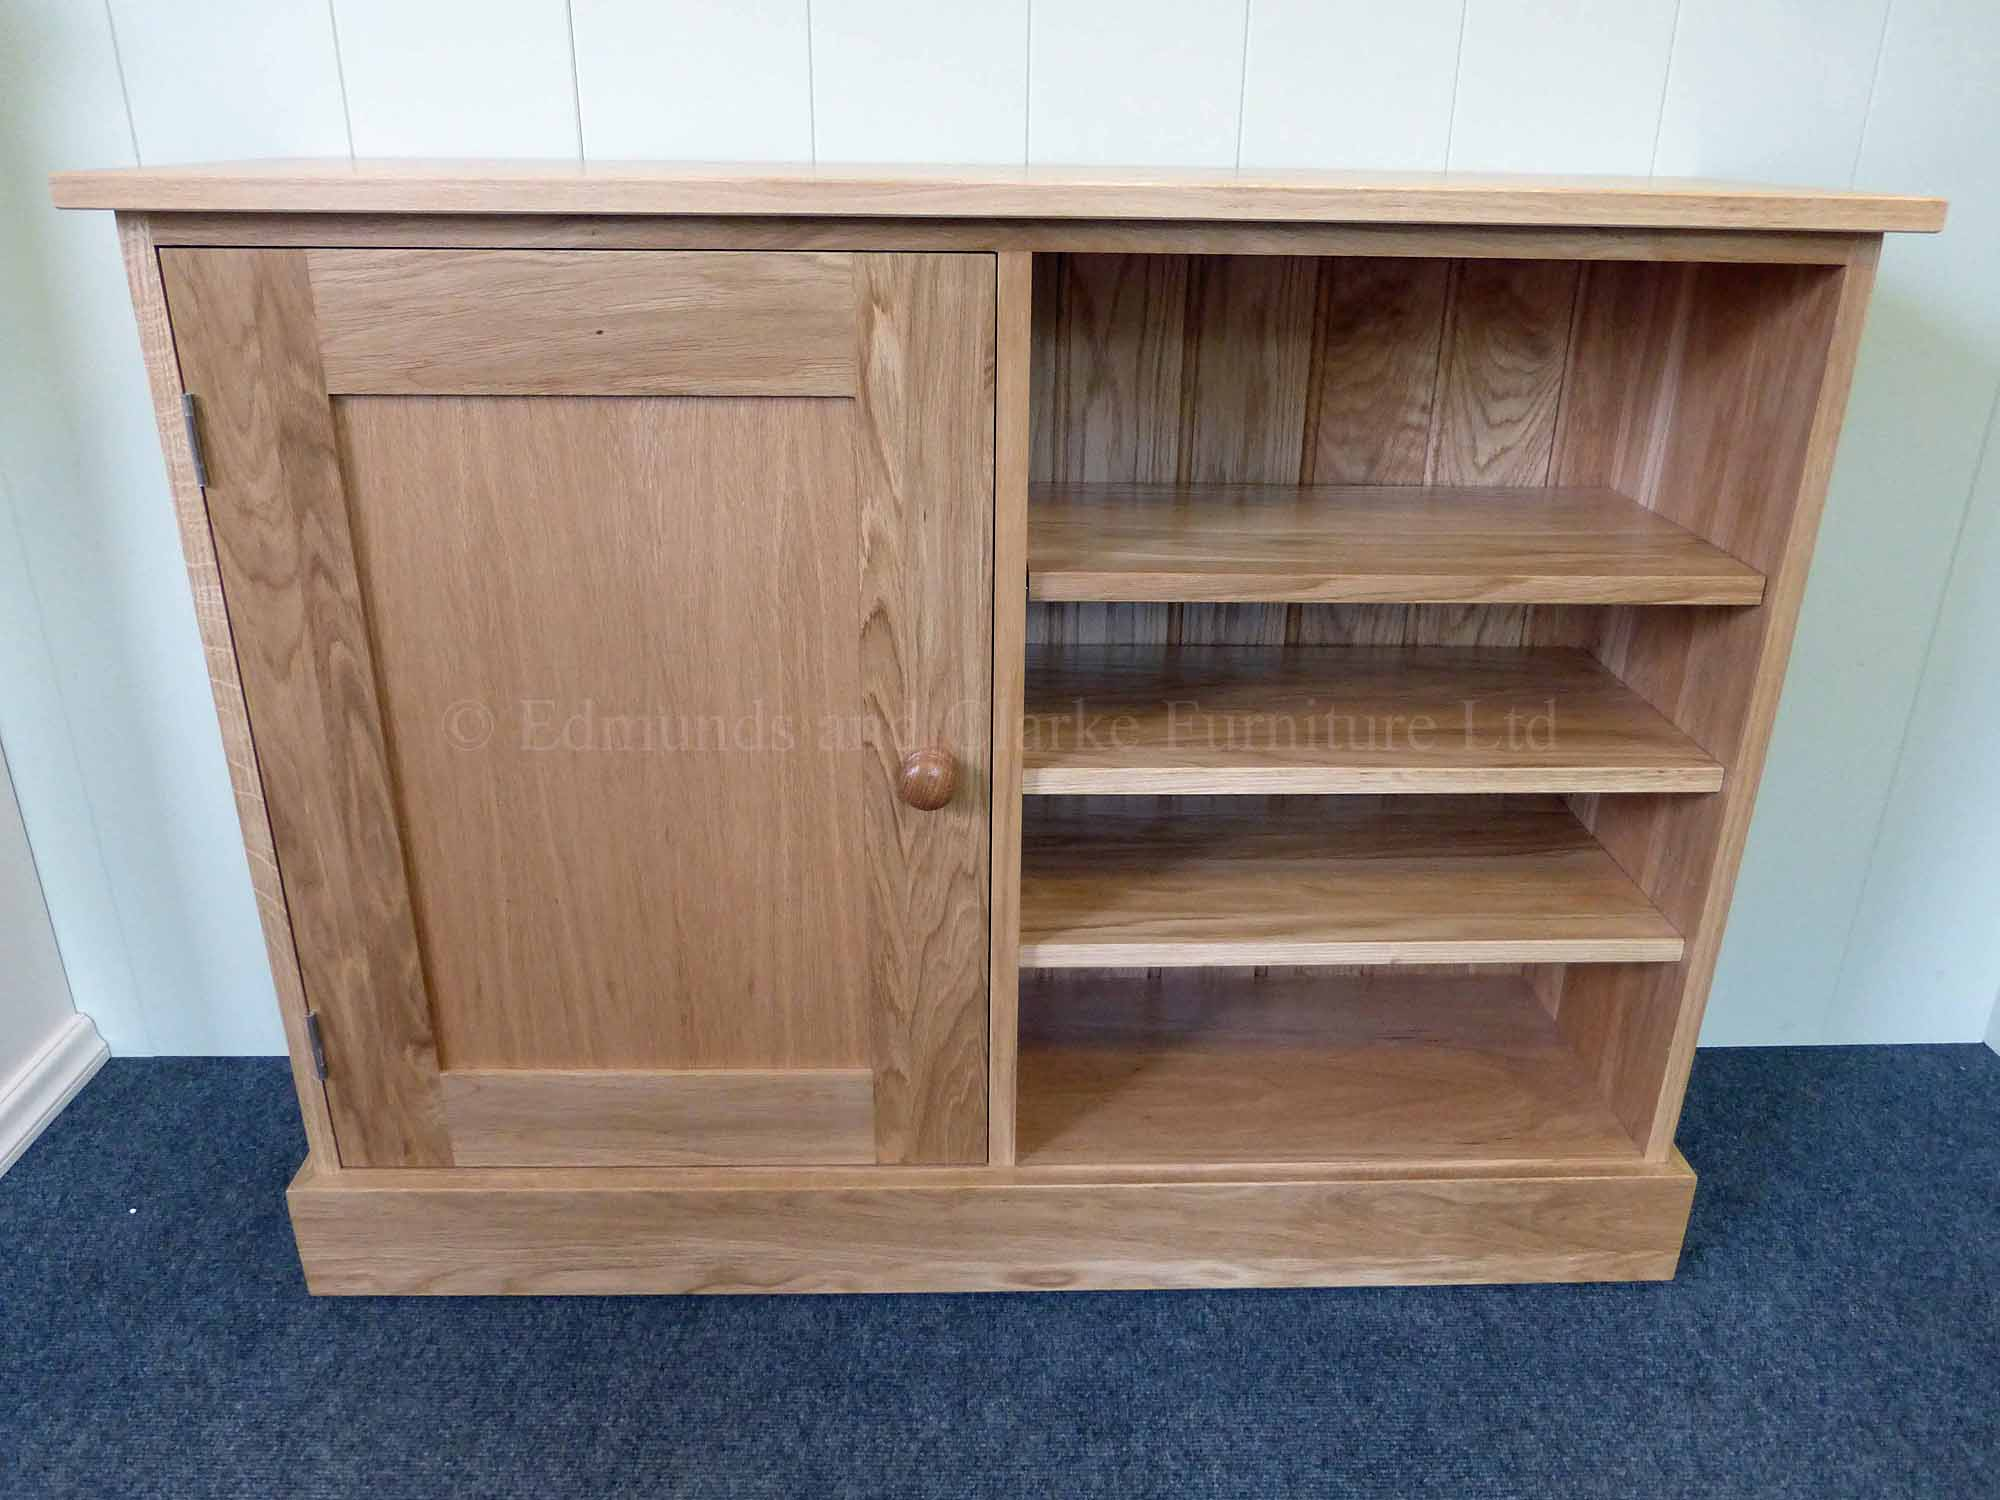 Solid oak multi cupboard paneled door on left with three adjustable shelves on right made all square edge in a shaker design